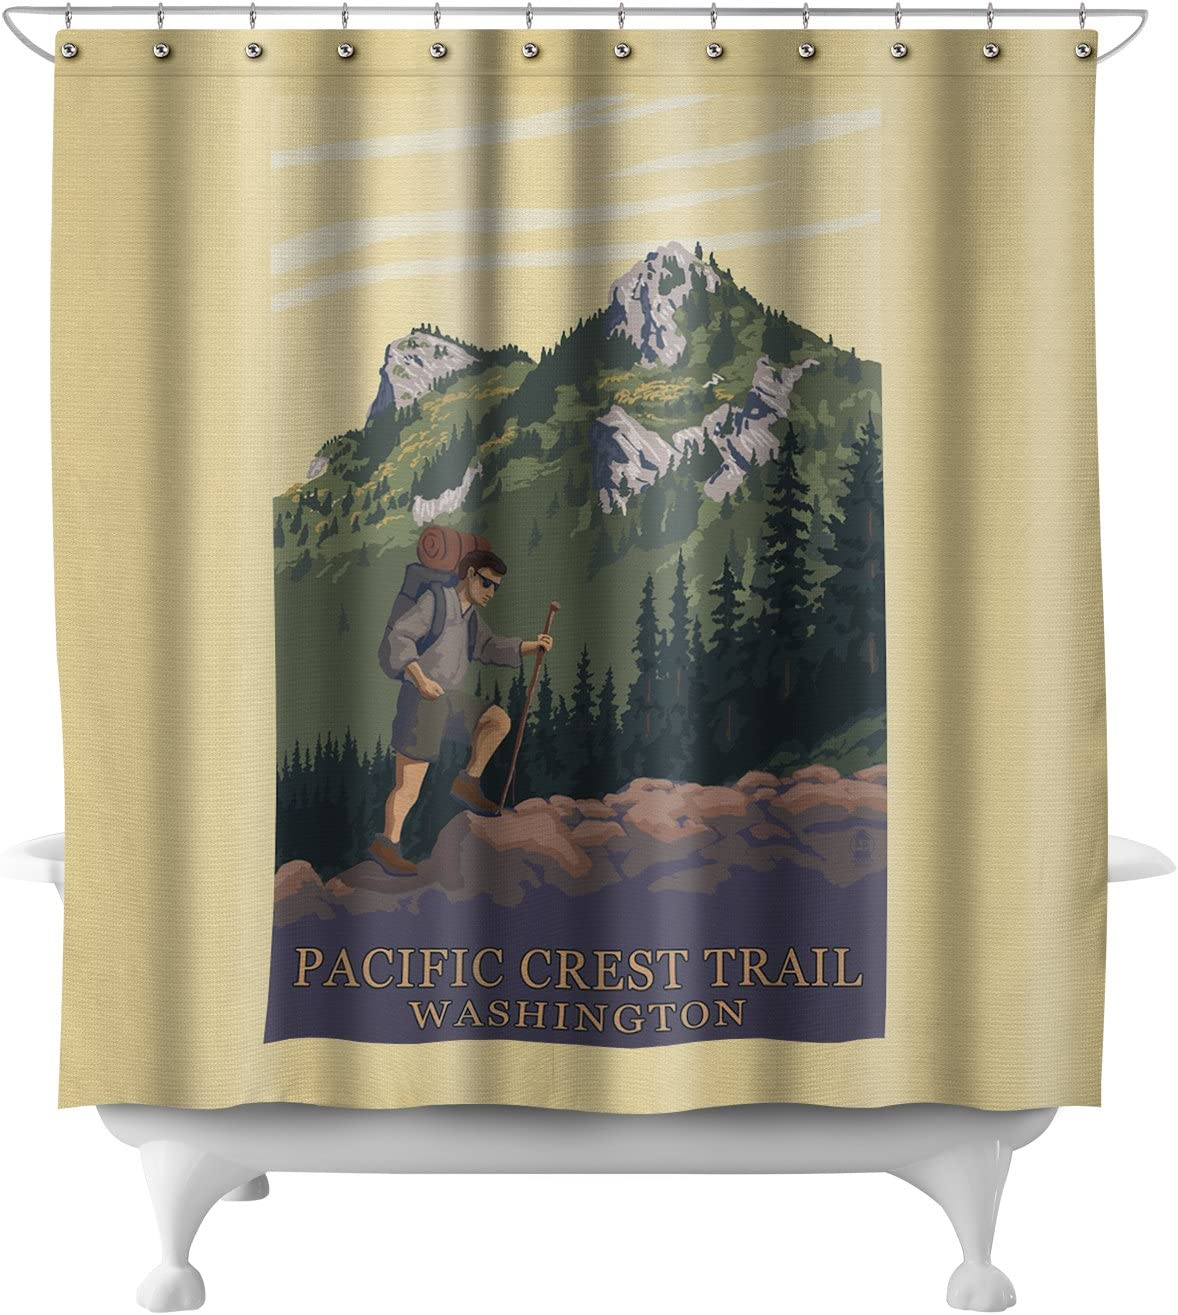 Pacific Crest Trail, Washington - Mountain Hiker (71x74 Polyester Shower Curtain)